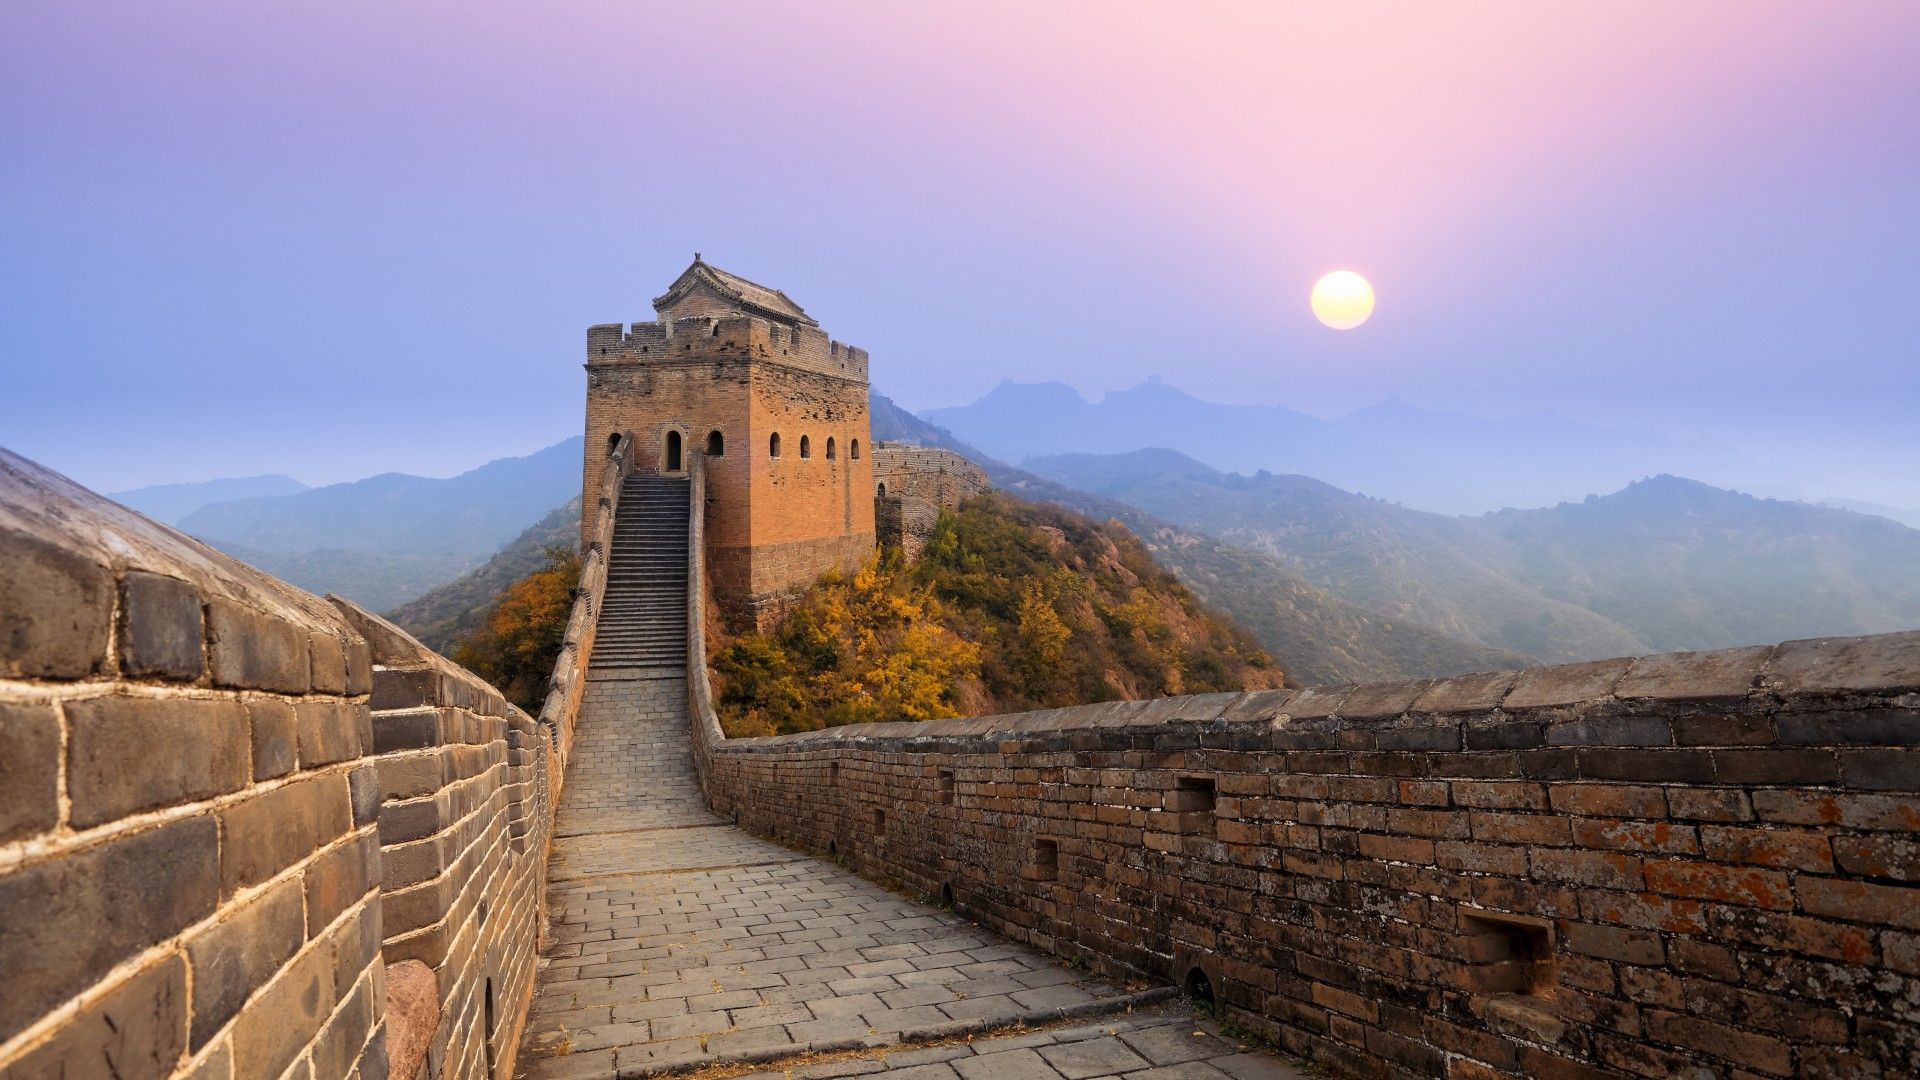 New 4k 3d Hd Wallpaper Great Wall Of China Sunrise Wallpapers Hd Wallpapers